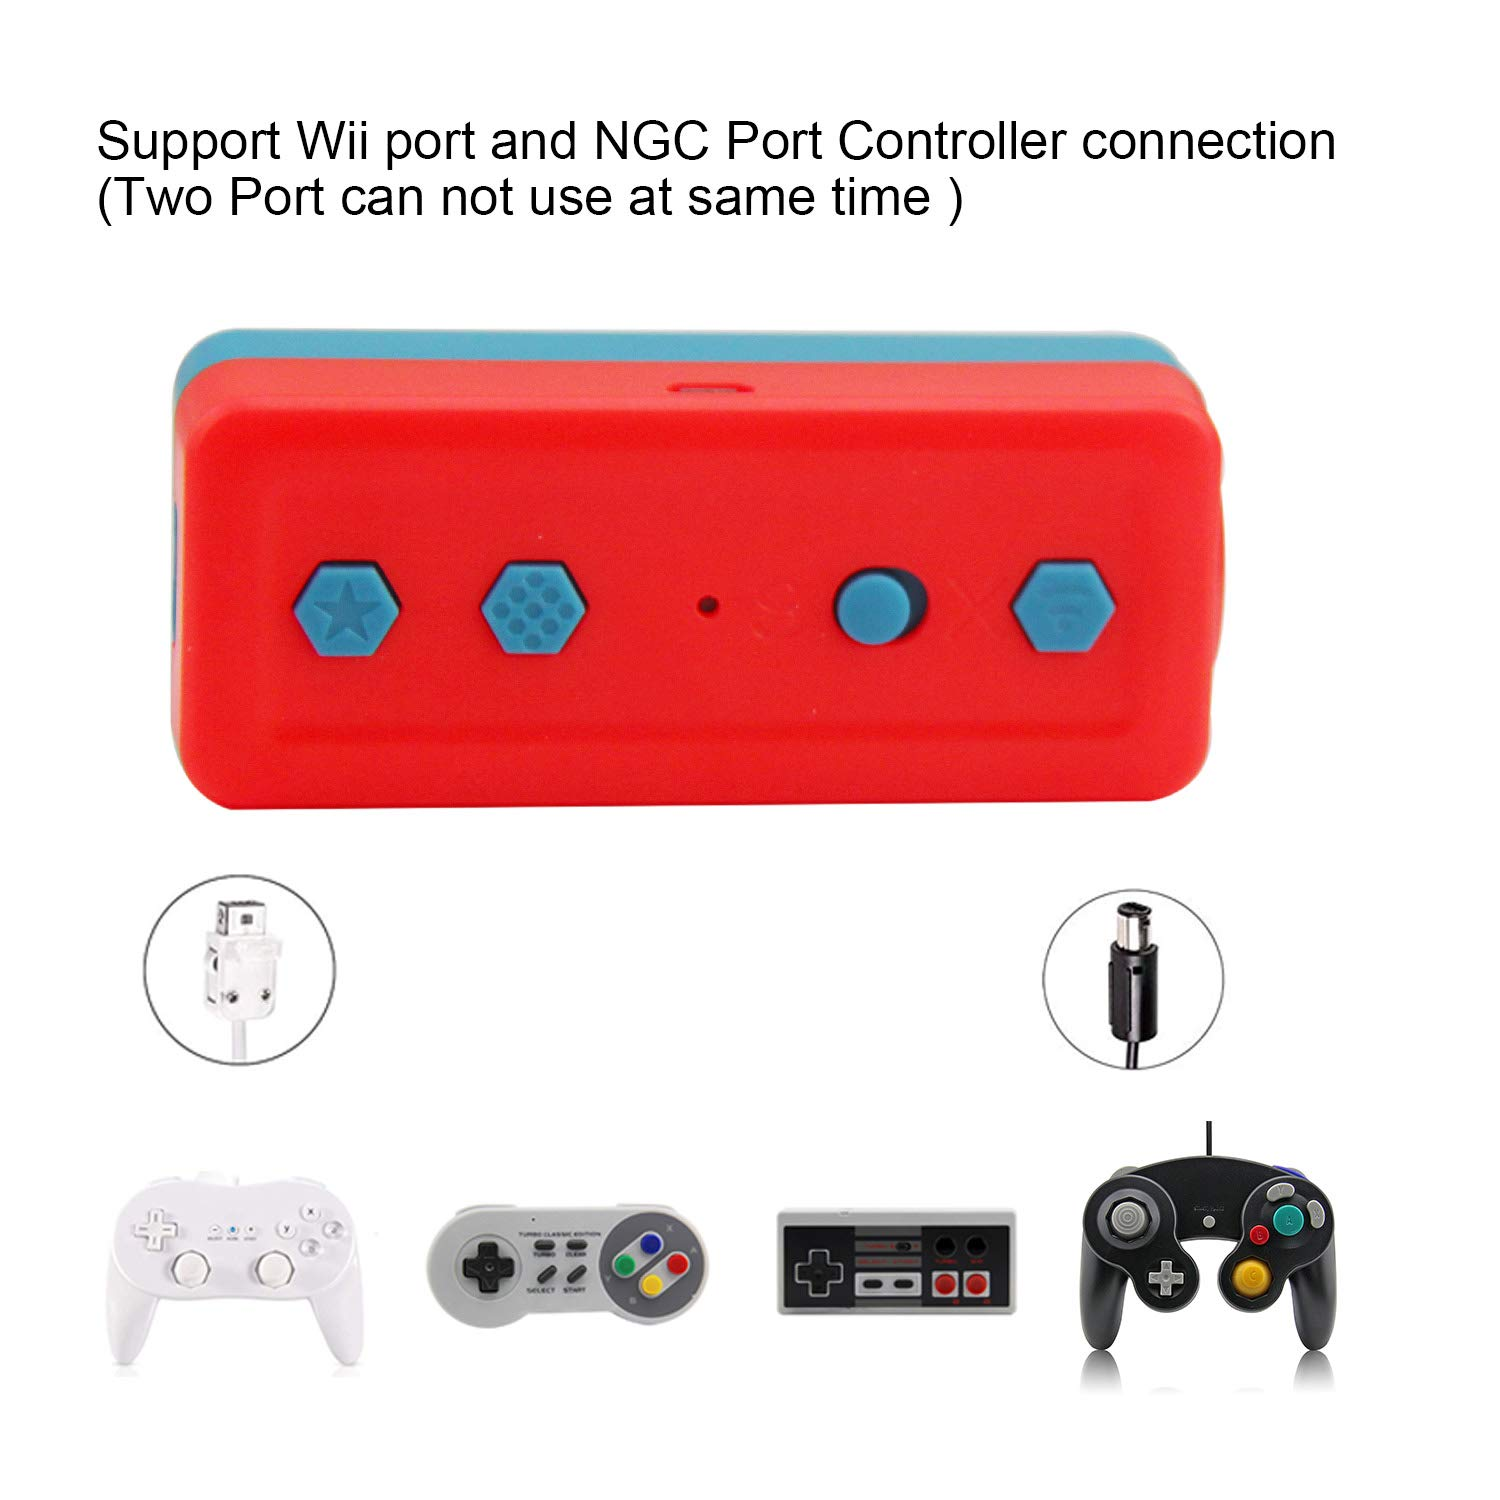 Converting A Snes Controller To Connect To A Nes Controller Port